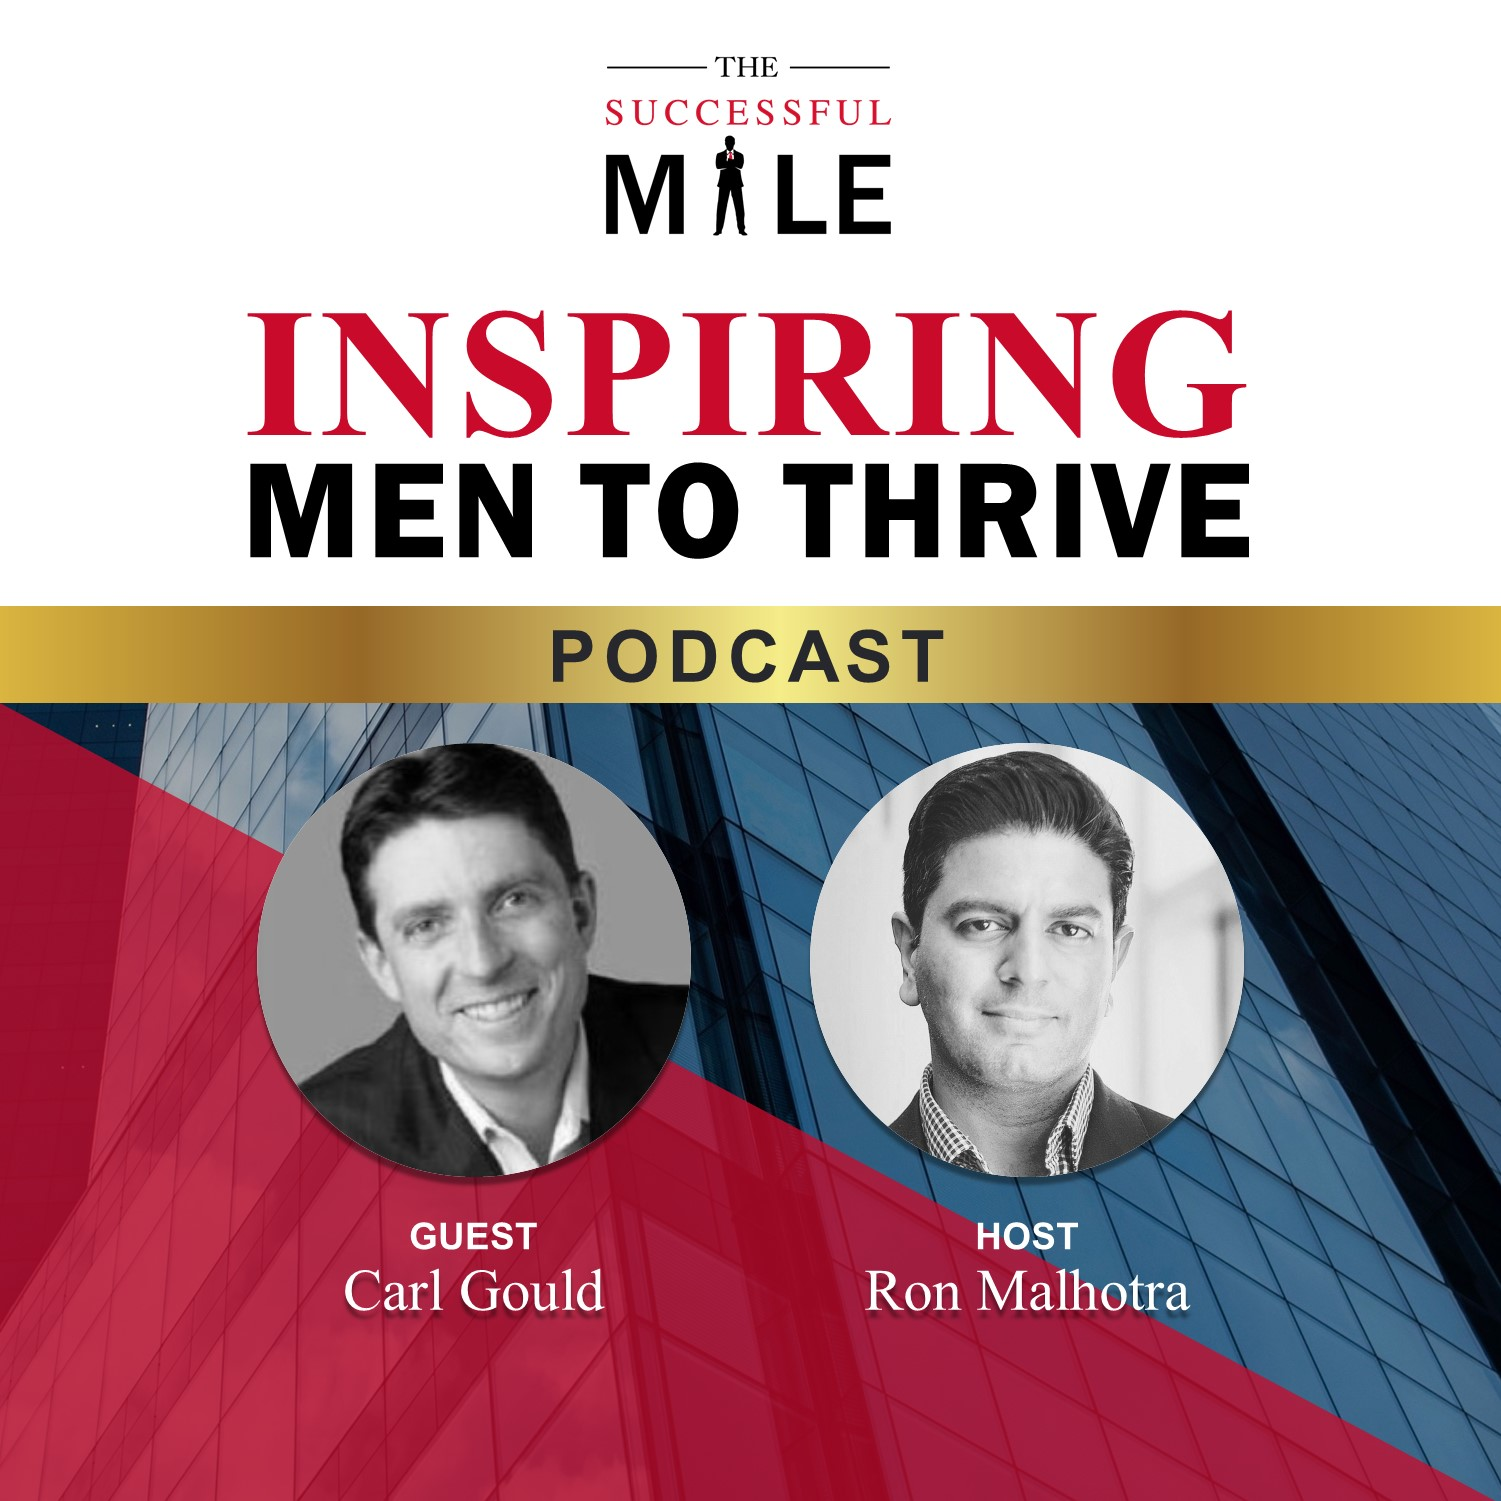 The Successful Male Podcast Business Principles For Entrepreneurship With Carl Gould